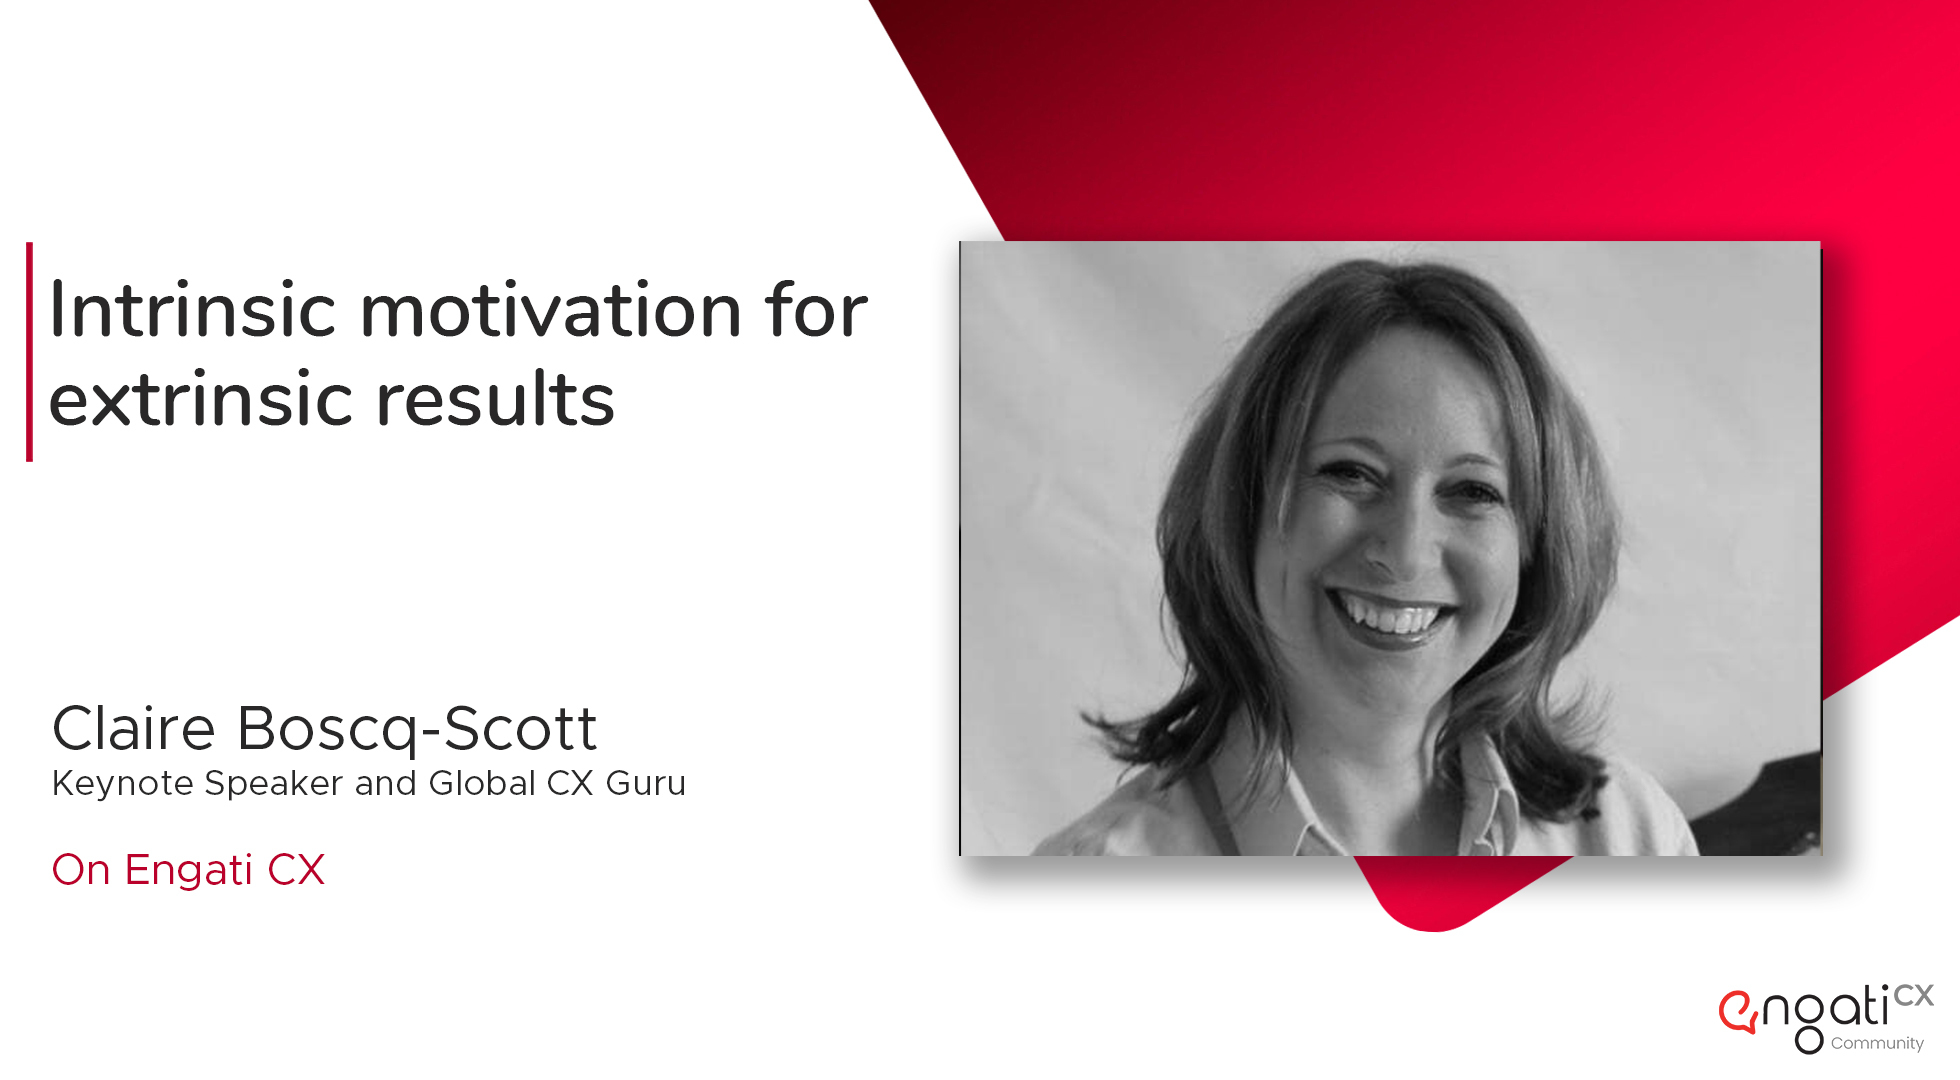 Intrinsic motivation for extrinsic results | Claire Boscq Scott | Engati CX